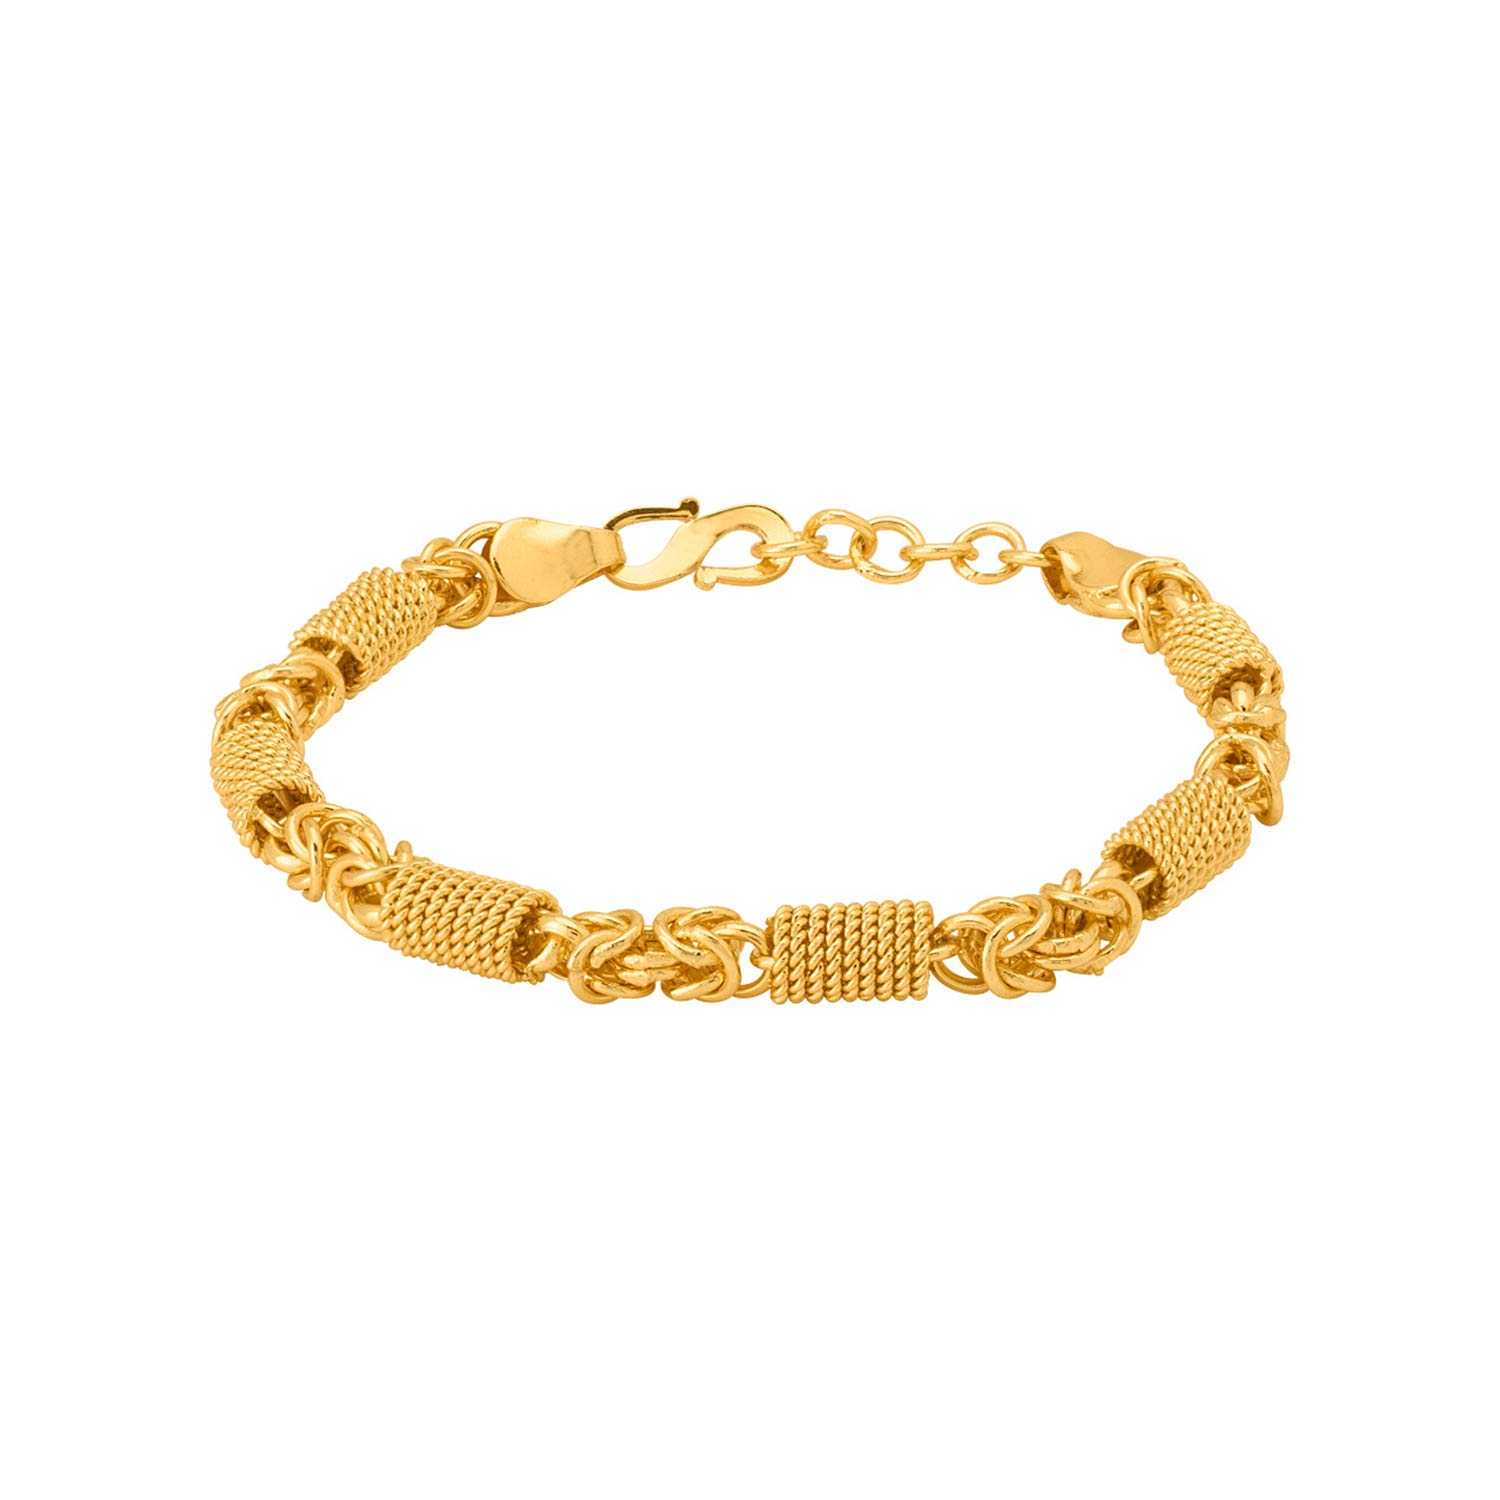 0f3dfd4a9e183 Dare by Voylla Linking Laureate Men's Brass Bracelet with Yellow ...